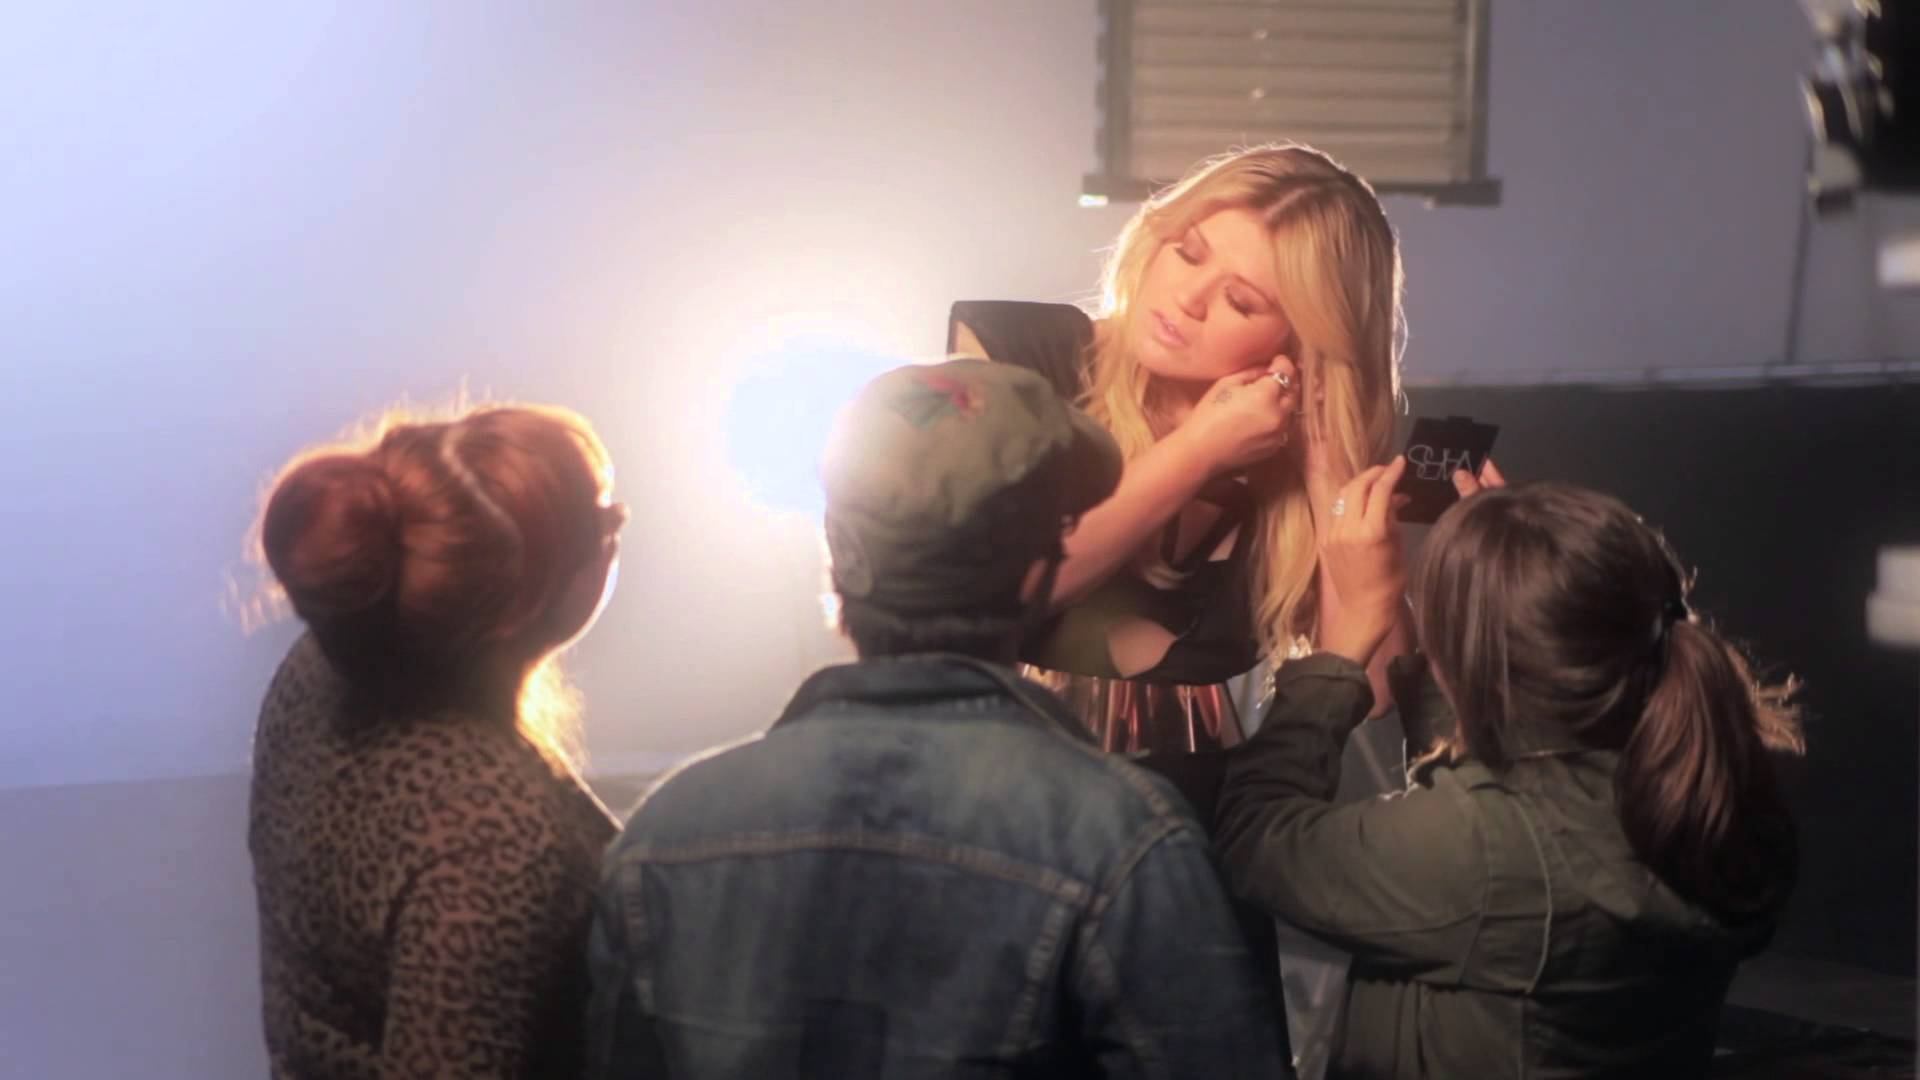 """Behind the Scenes of The Music Video """"Catch My Breath"""""""